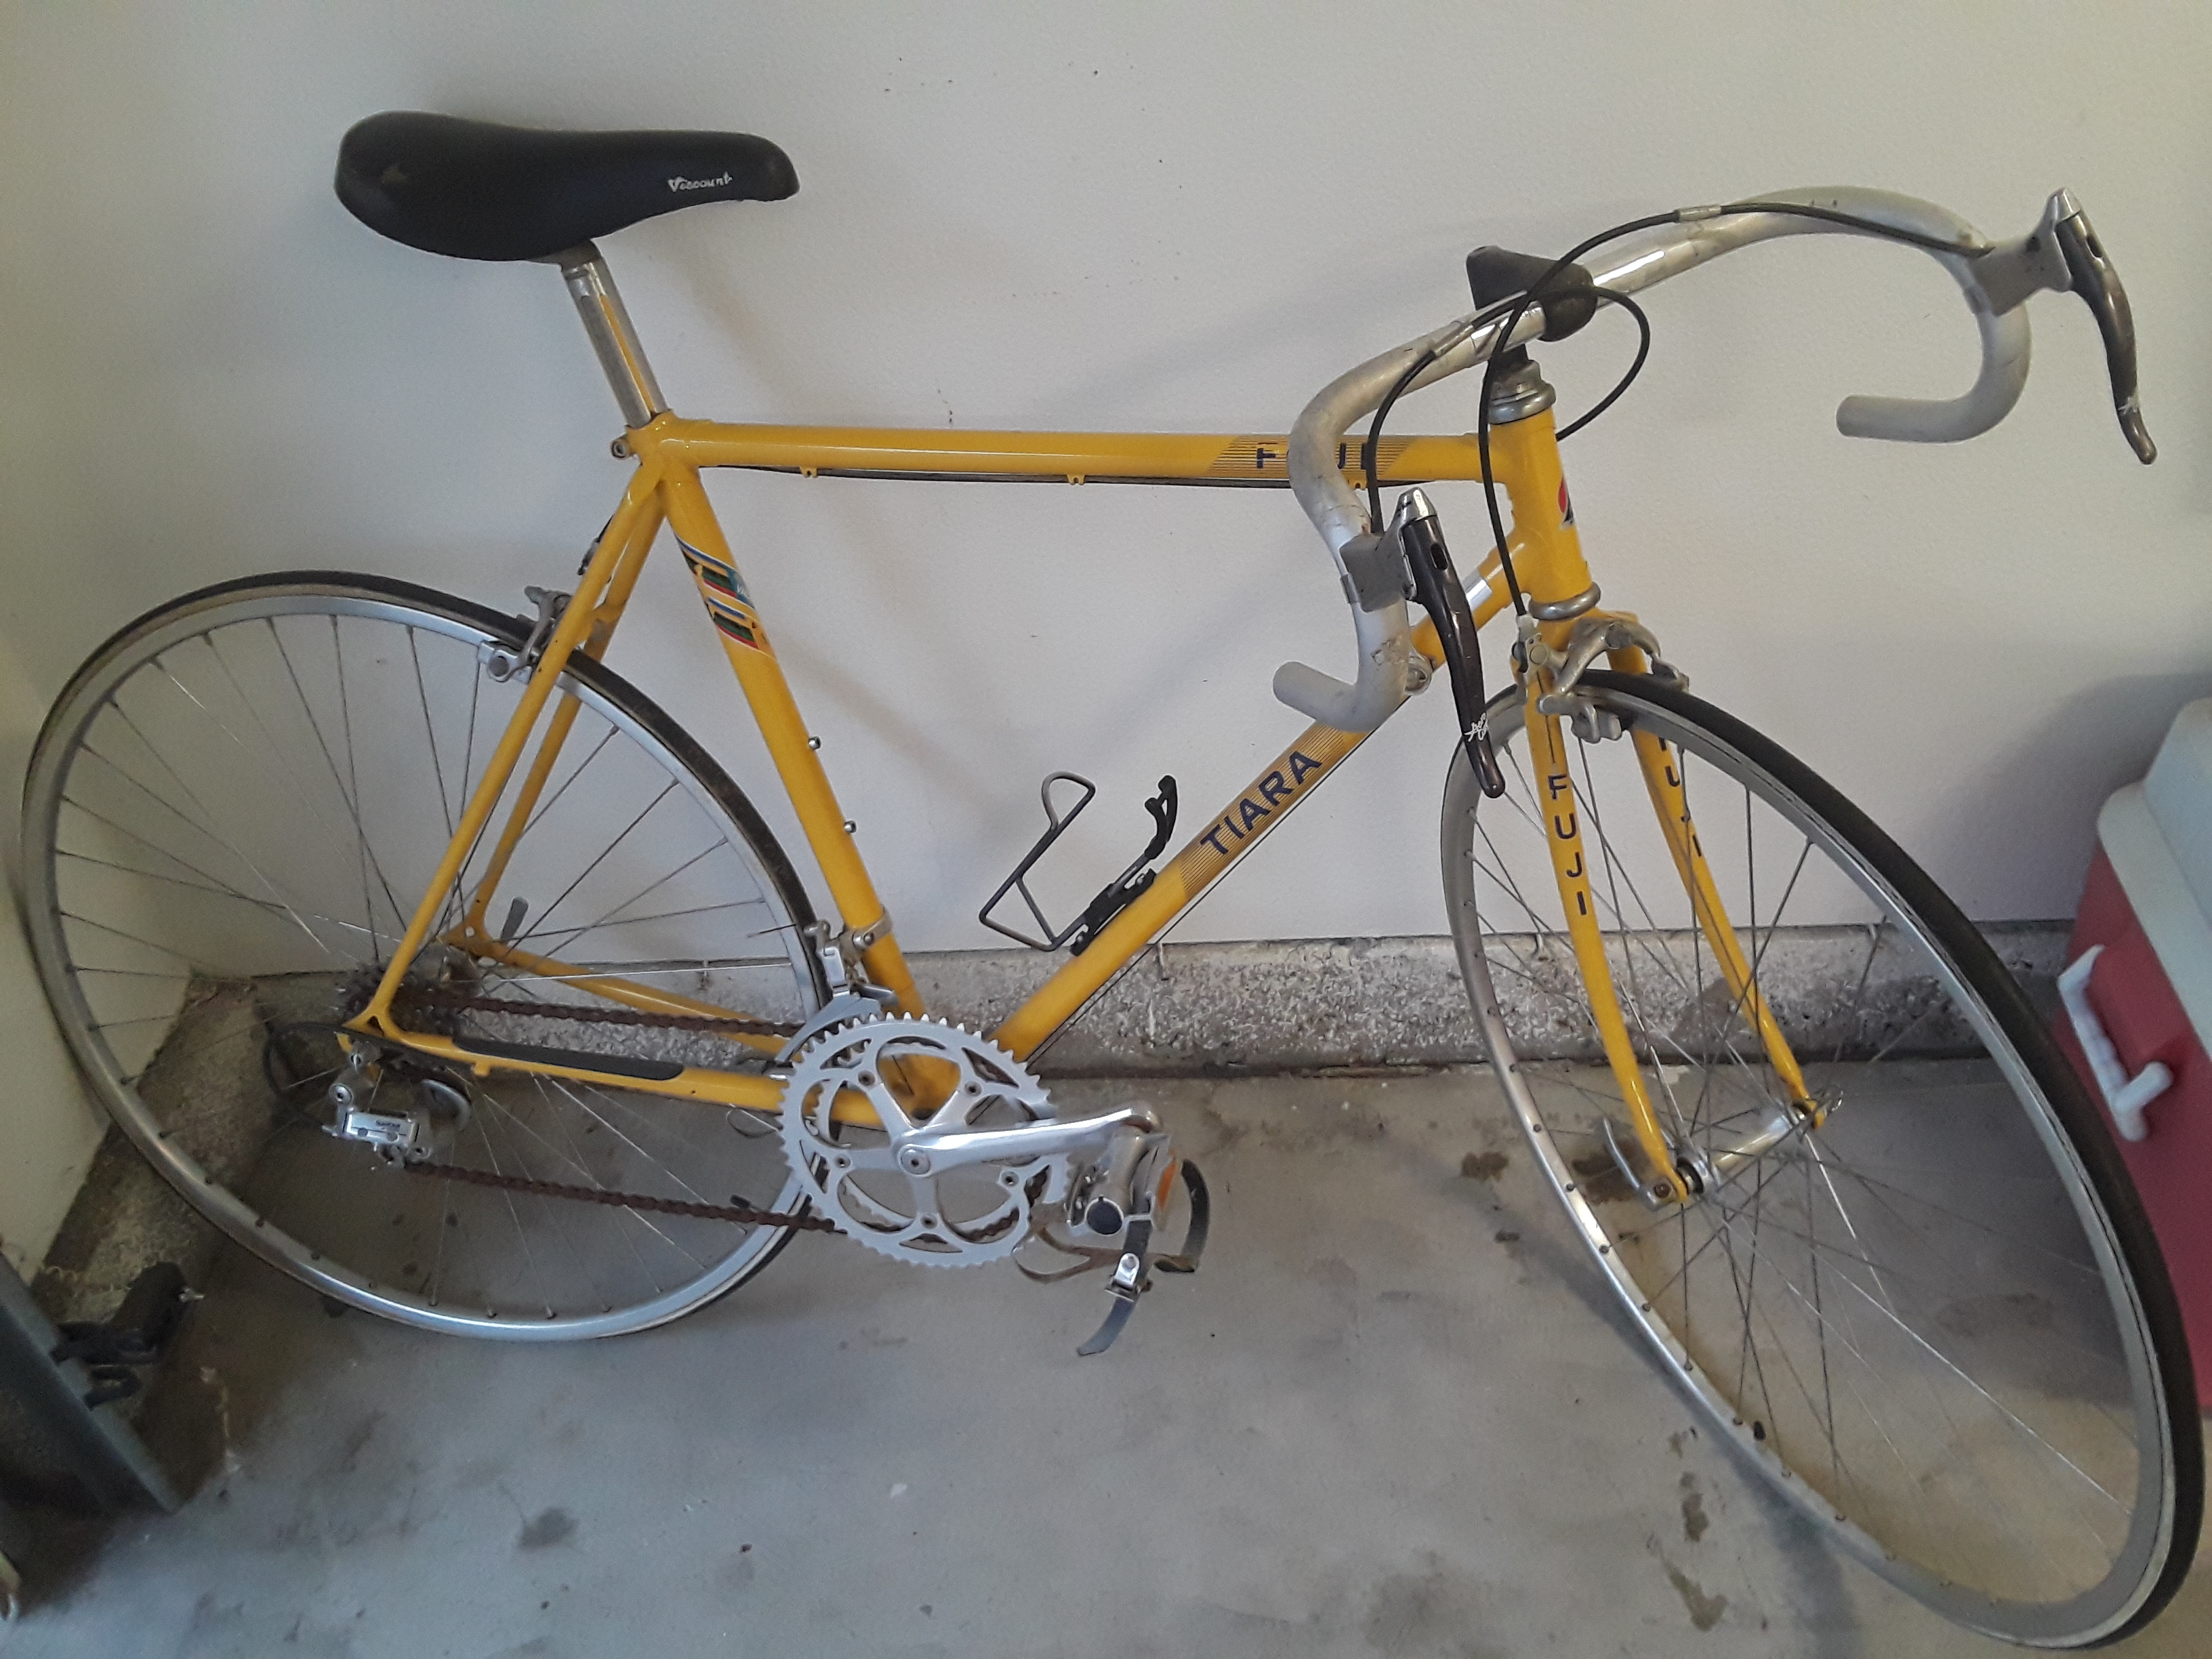 """SUPER RARE"" 1987 Fuji Tiara 12 Speed Racing Bicycle"